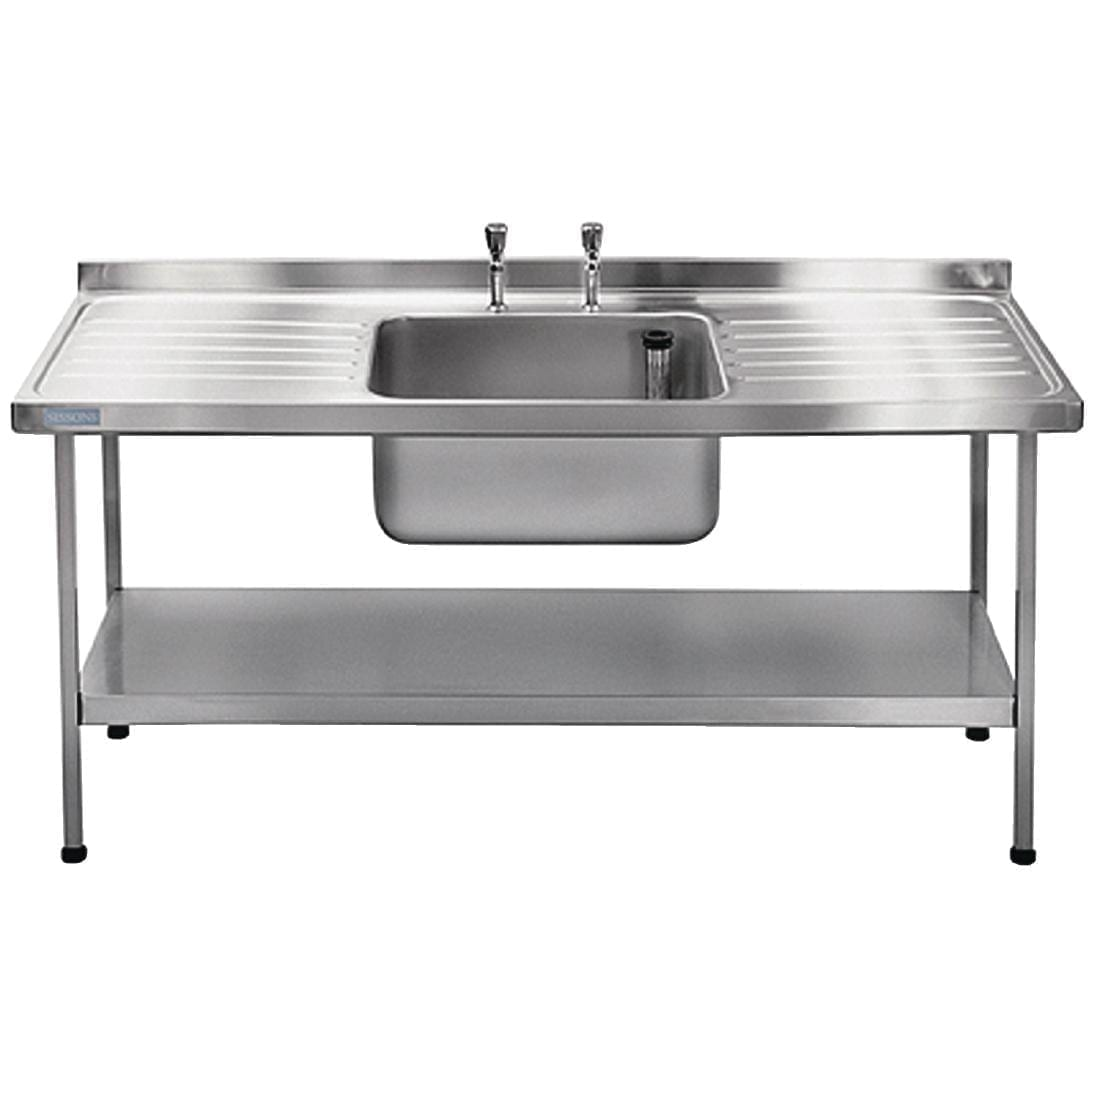 Sissons Centre Bowl & taps Double Drainer Midi Range St/St 1800mm F/Asmb(Direct)-0